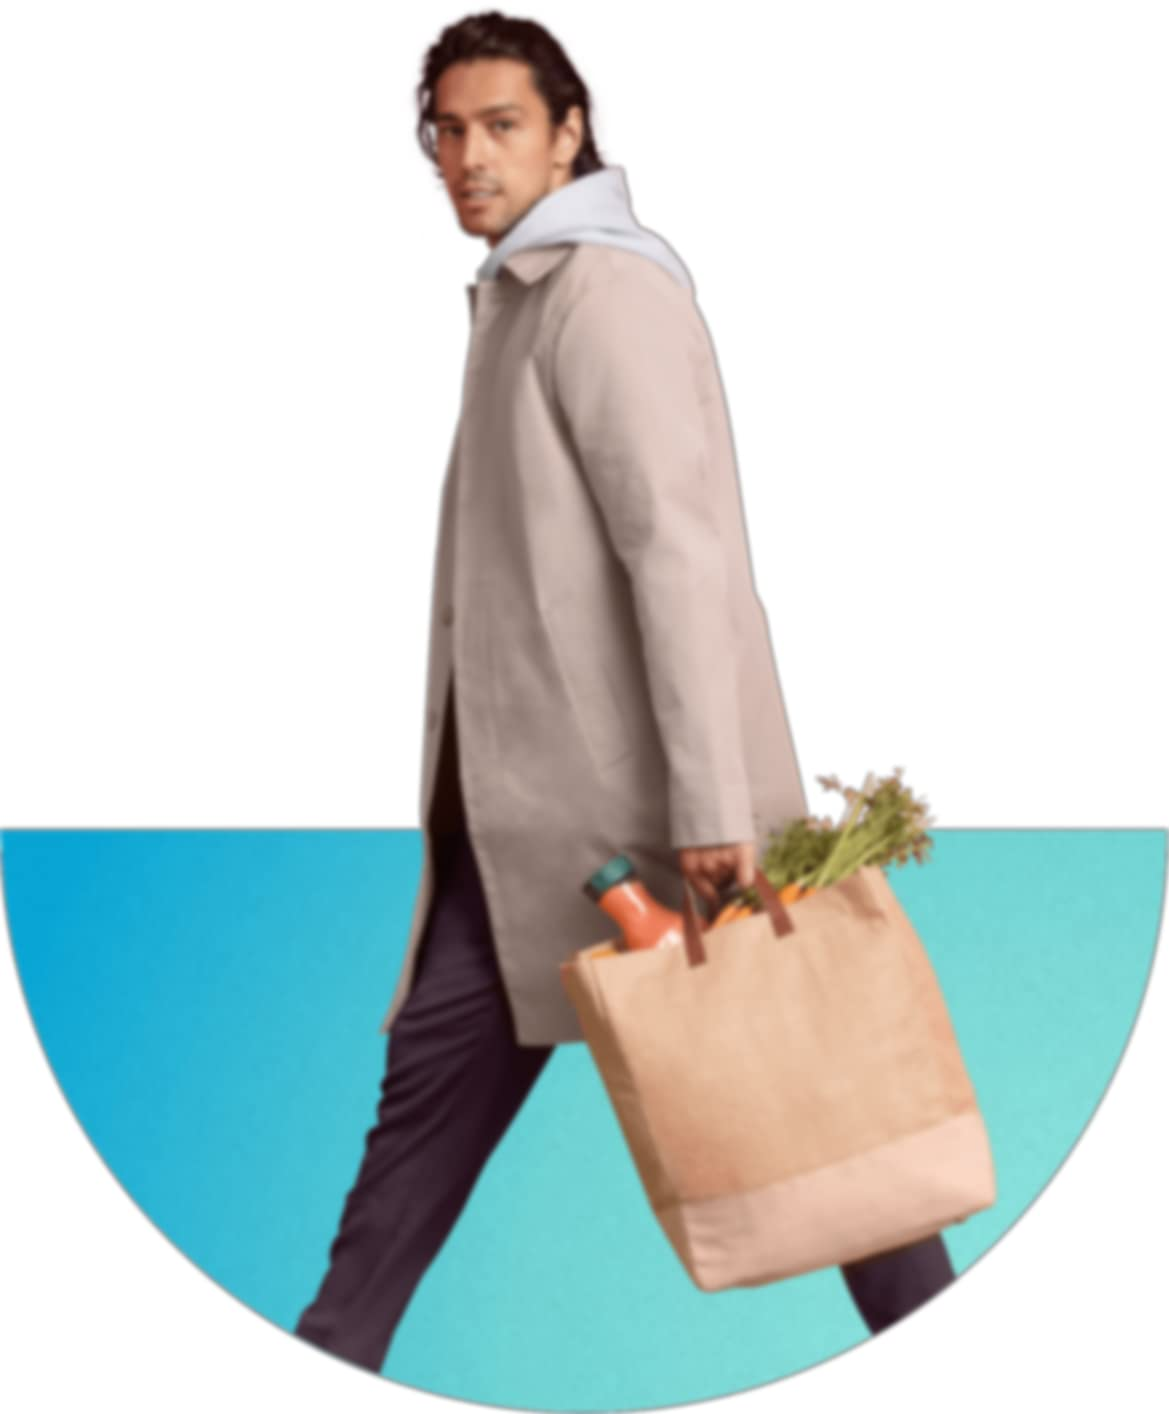 A man in a coat holding bag of groceries